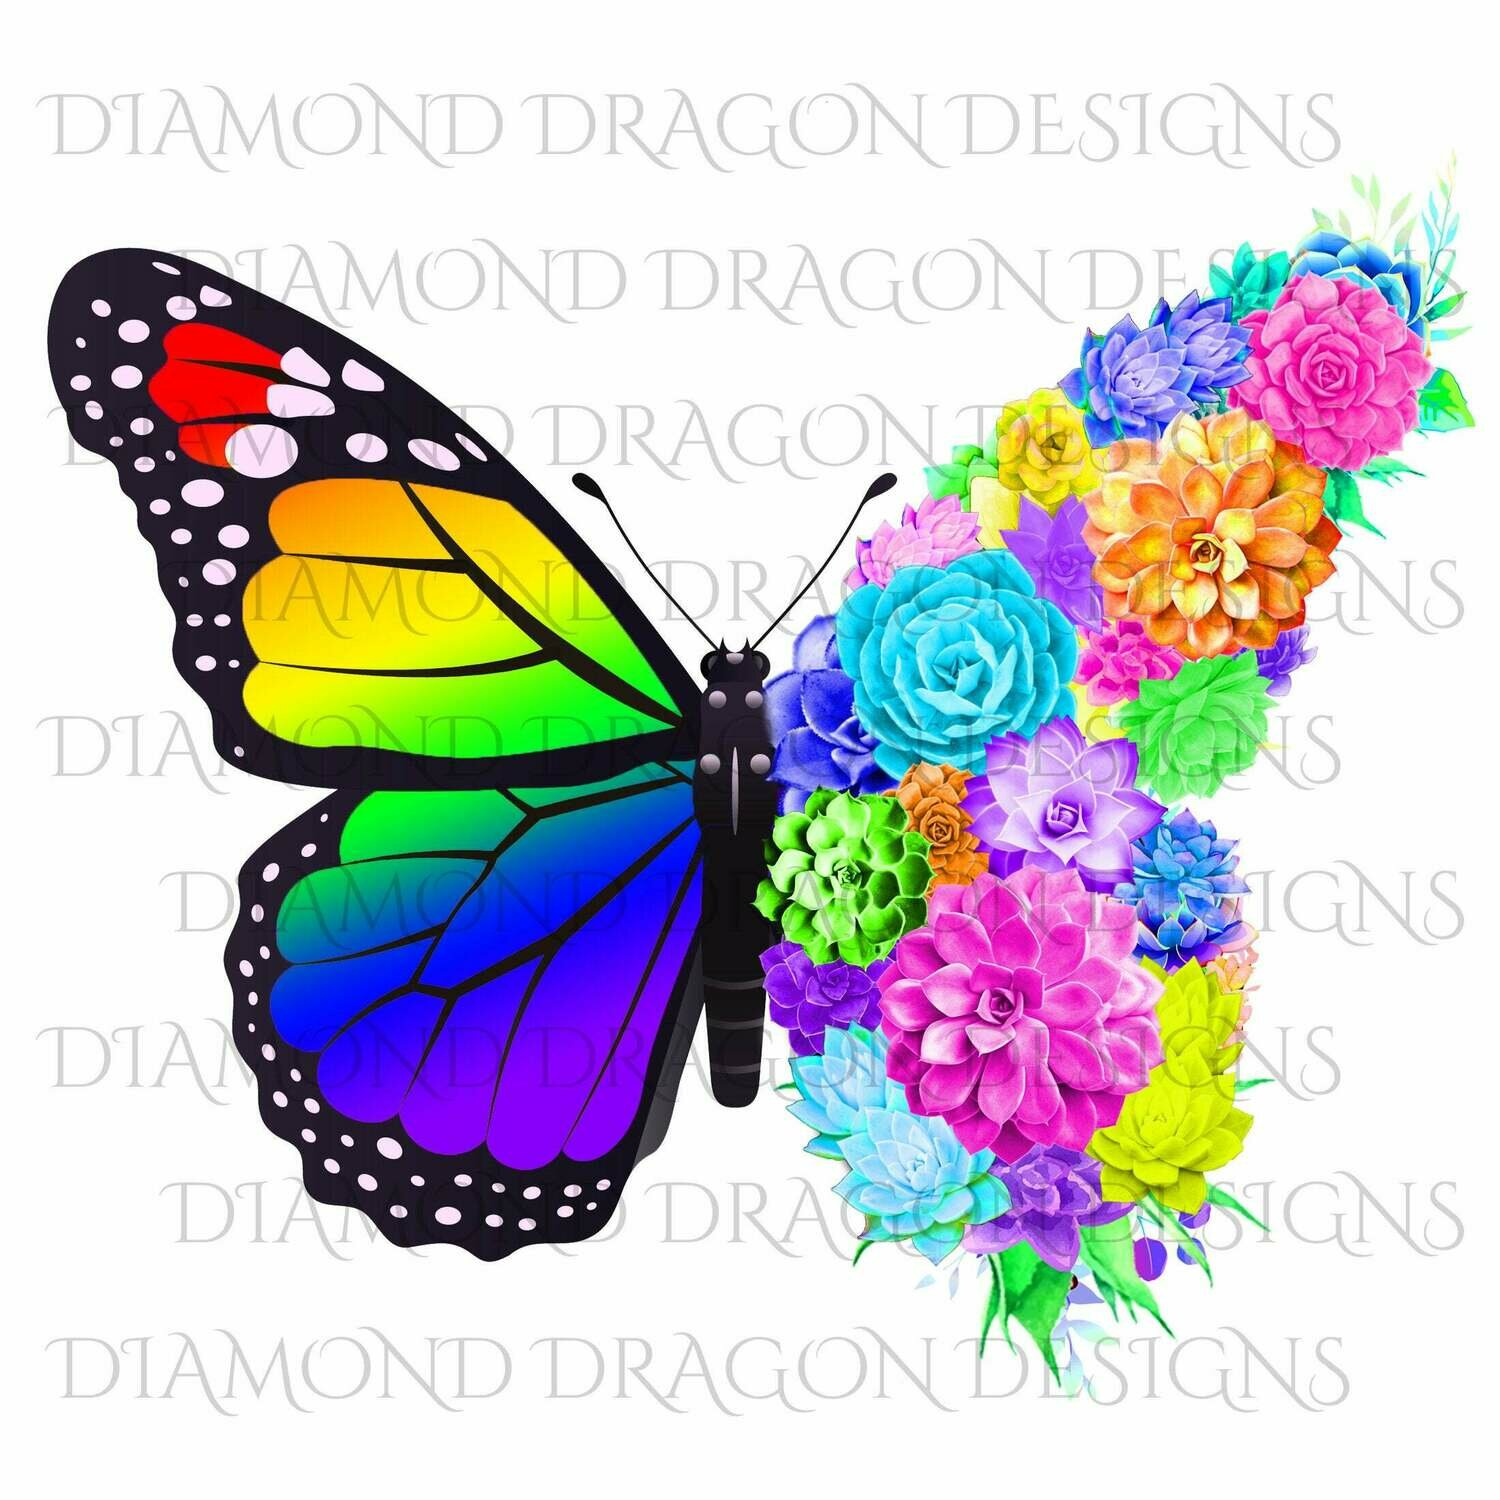 Butterfly - Succulent Butterfly, Monarch Butterfly, Rainbow, Watercolor Butterfly, Butterfly with Succulents, Digital Image